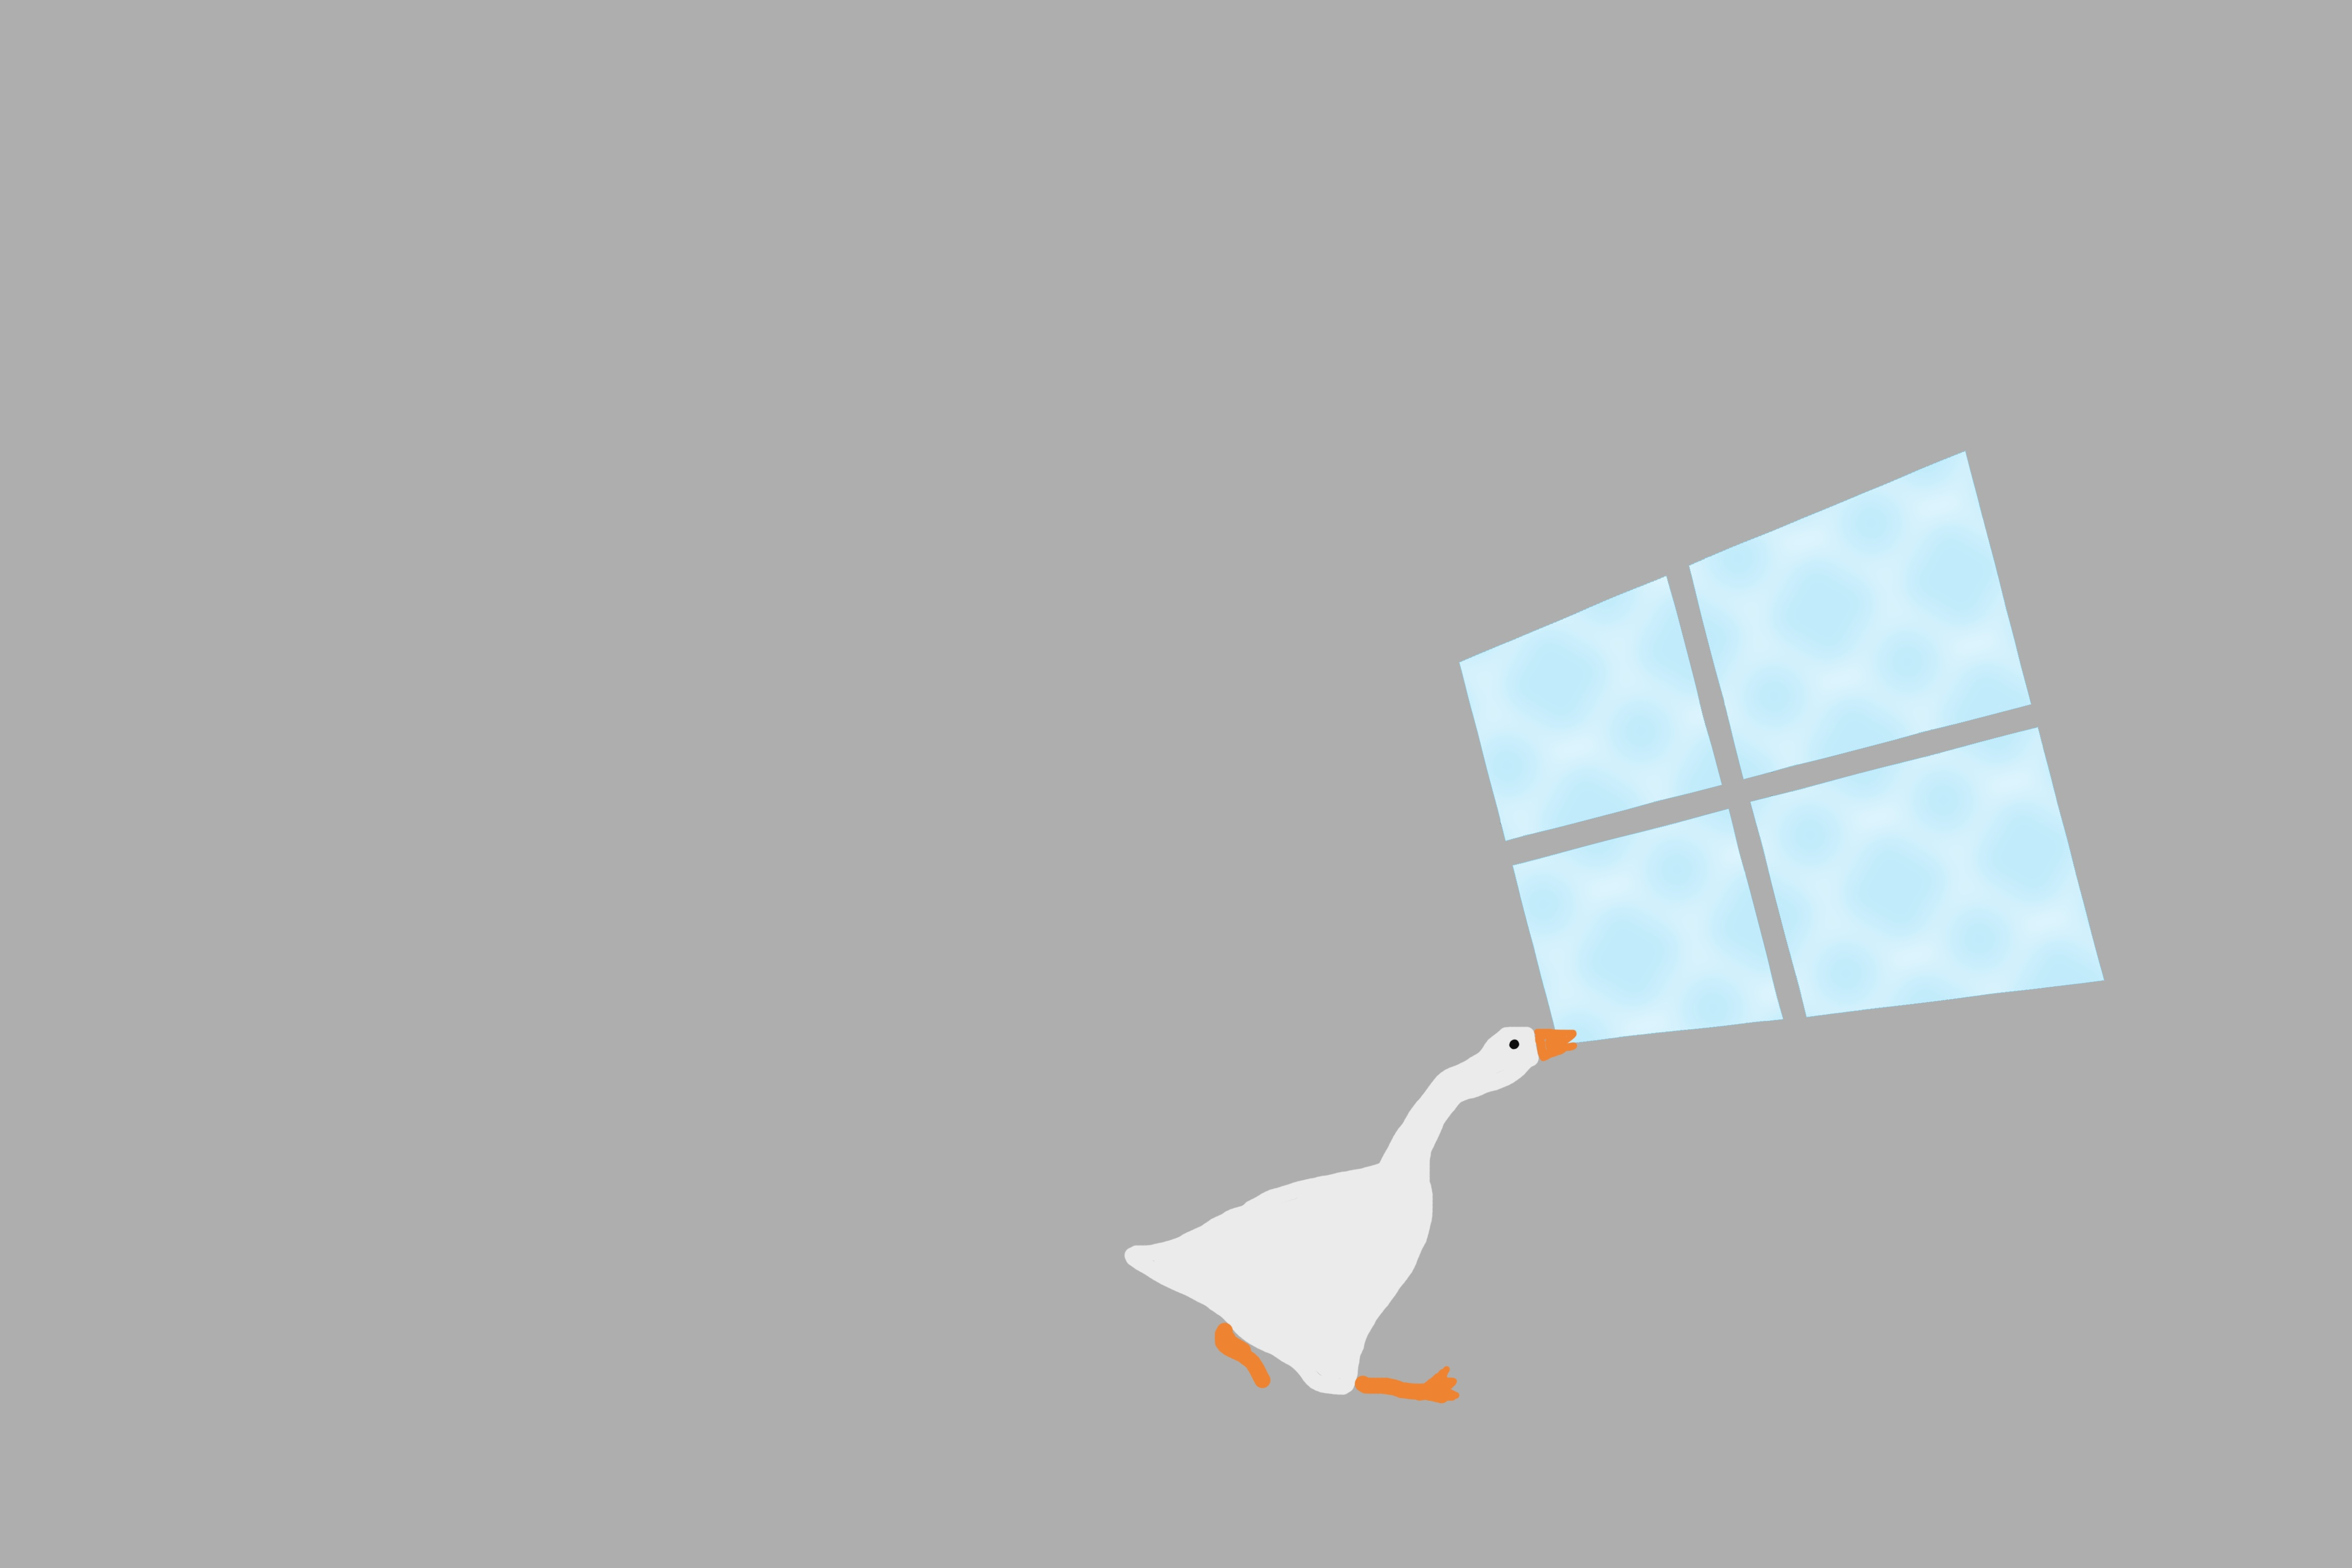 Untitled Goose Wallpaper hd background